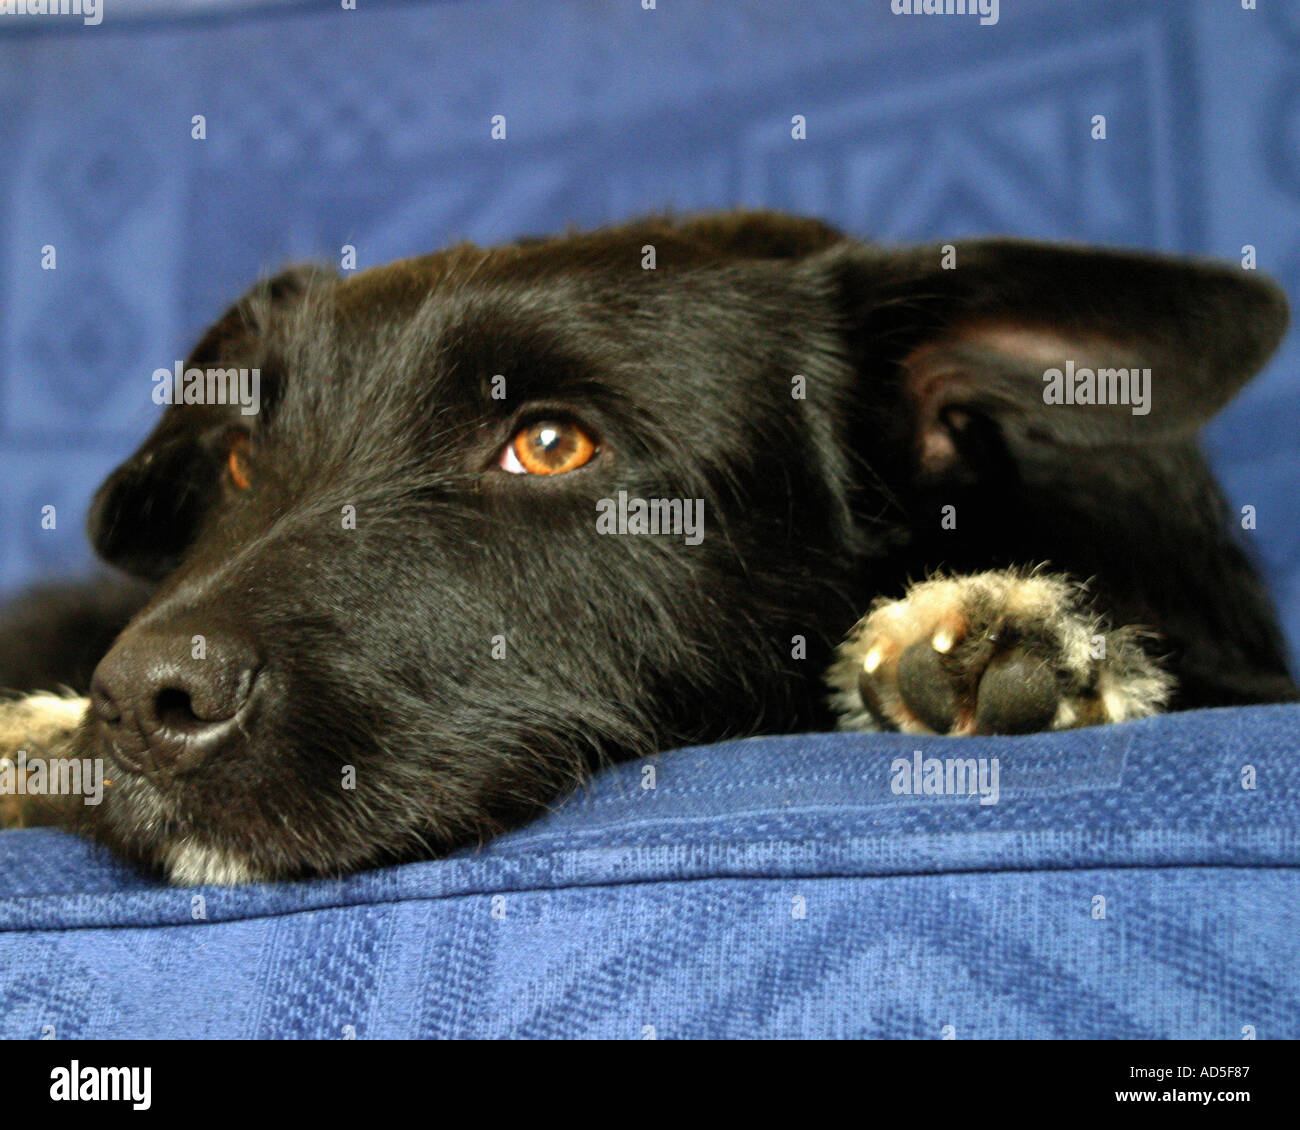 Mongrel on sofa - Stock Image